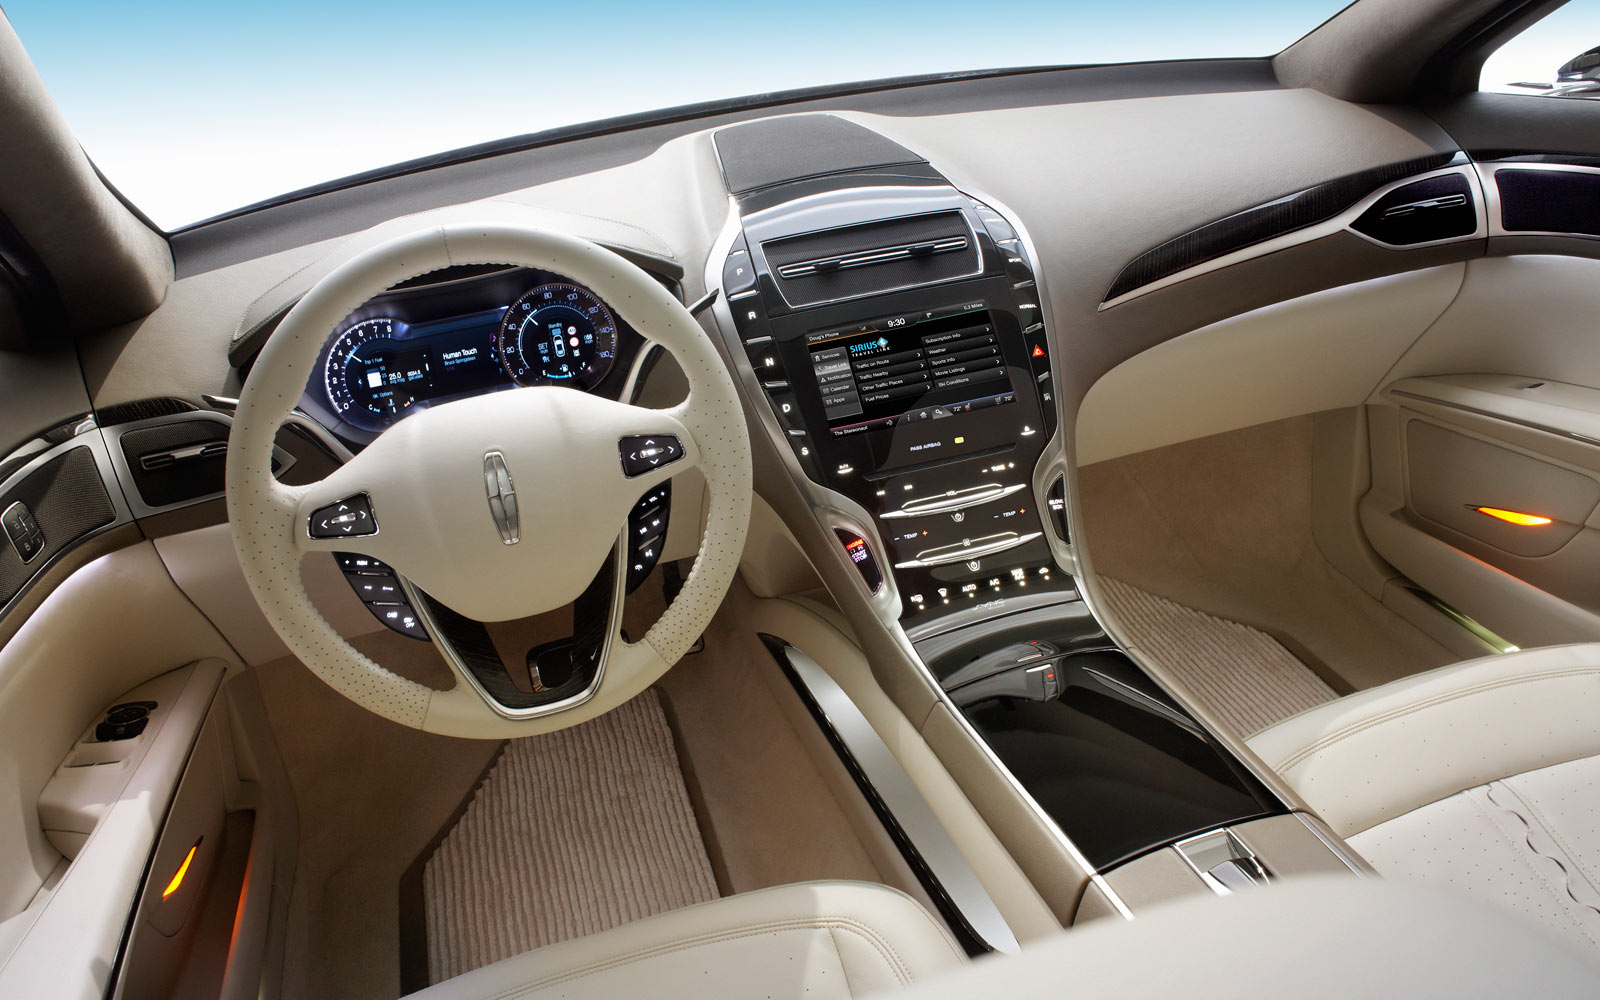 Lovely Lincoln MKZ Concept Interior Photo Gallery